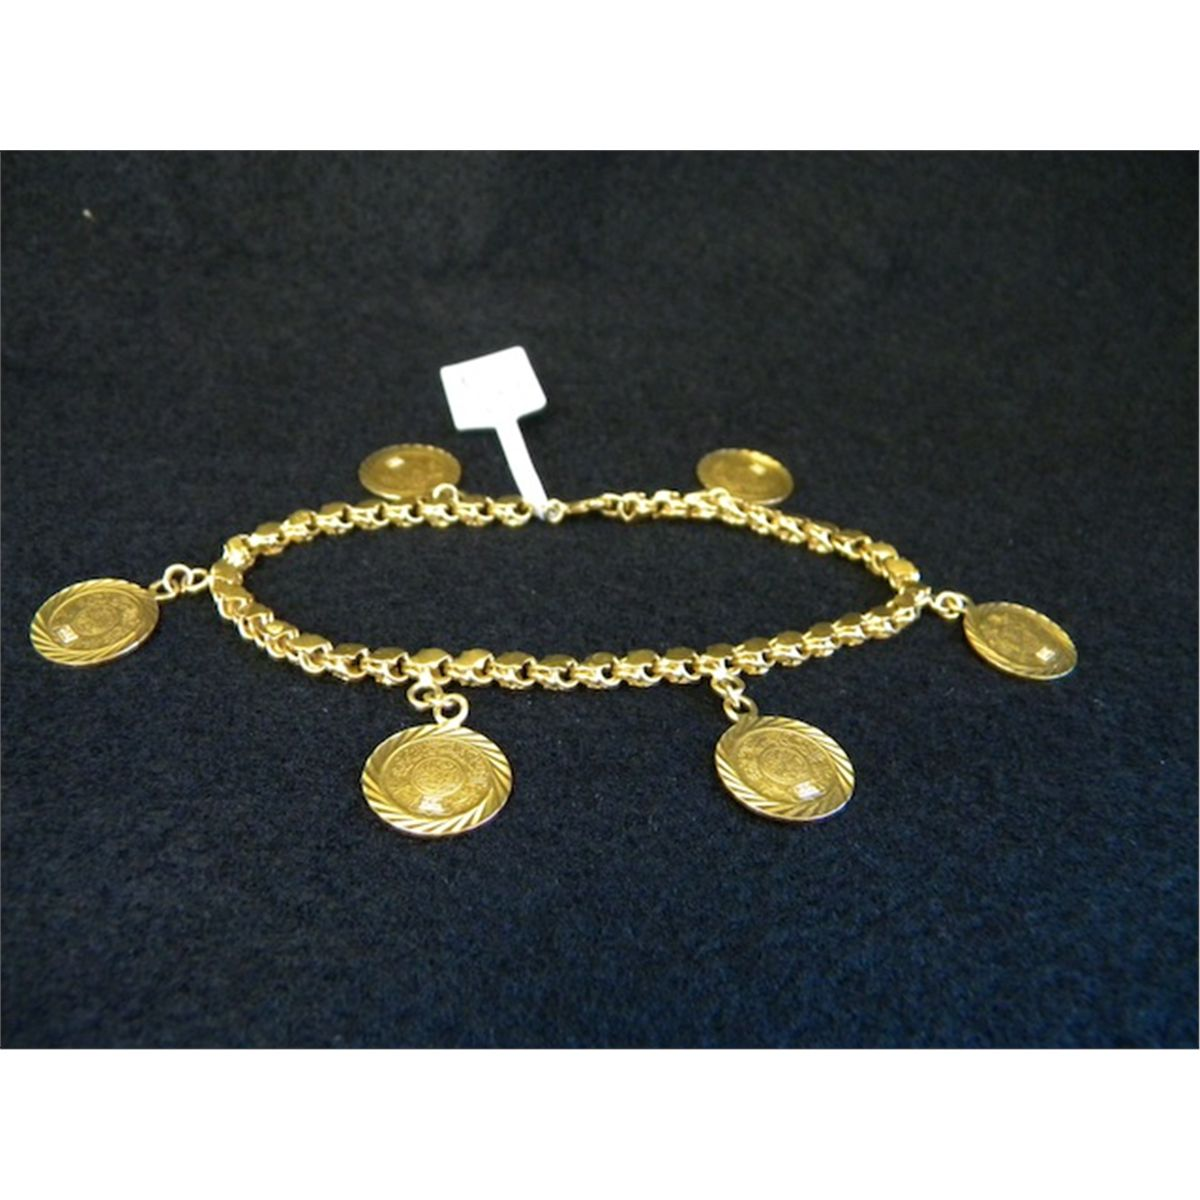 22k Yellow Gold Charm Bracelet With 6 Small Coin Charms